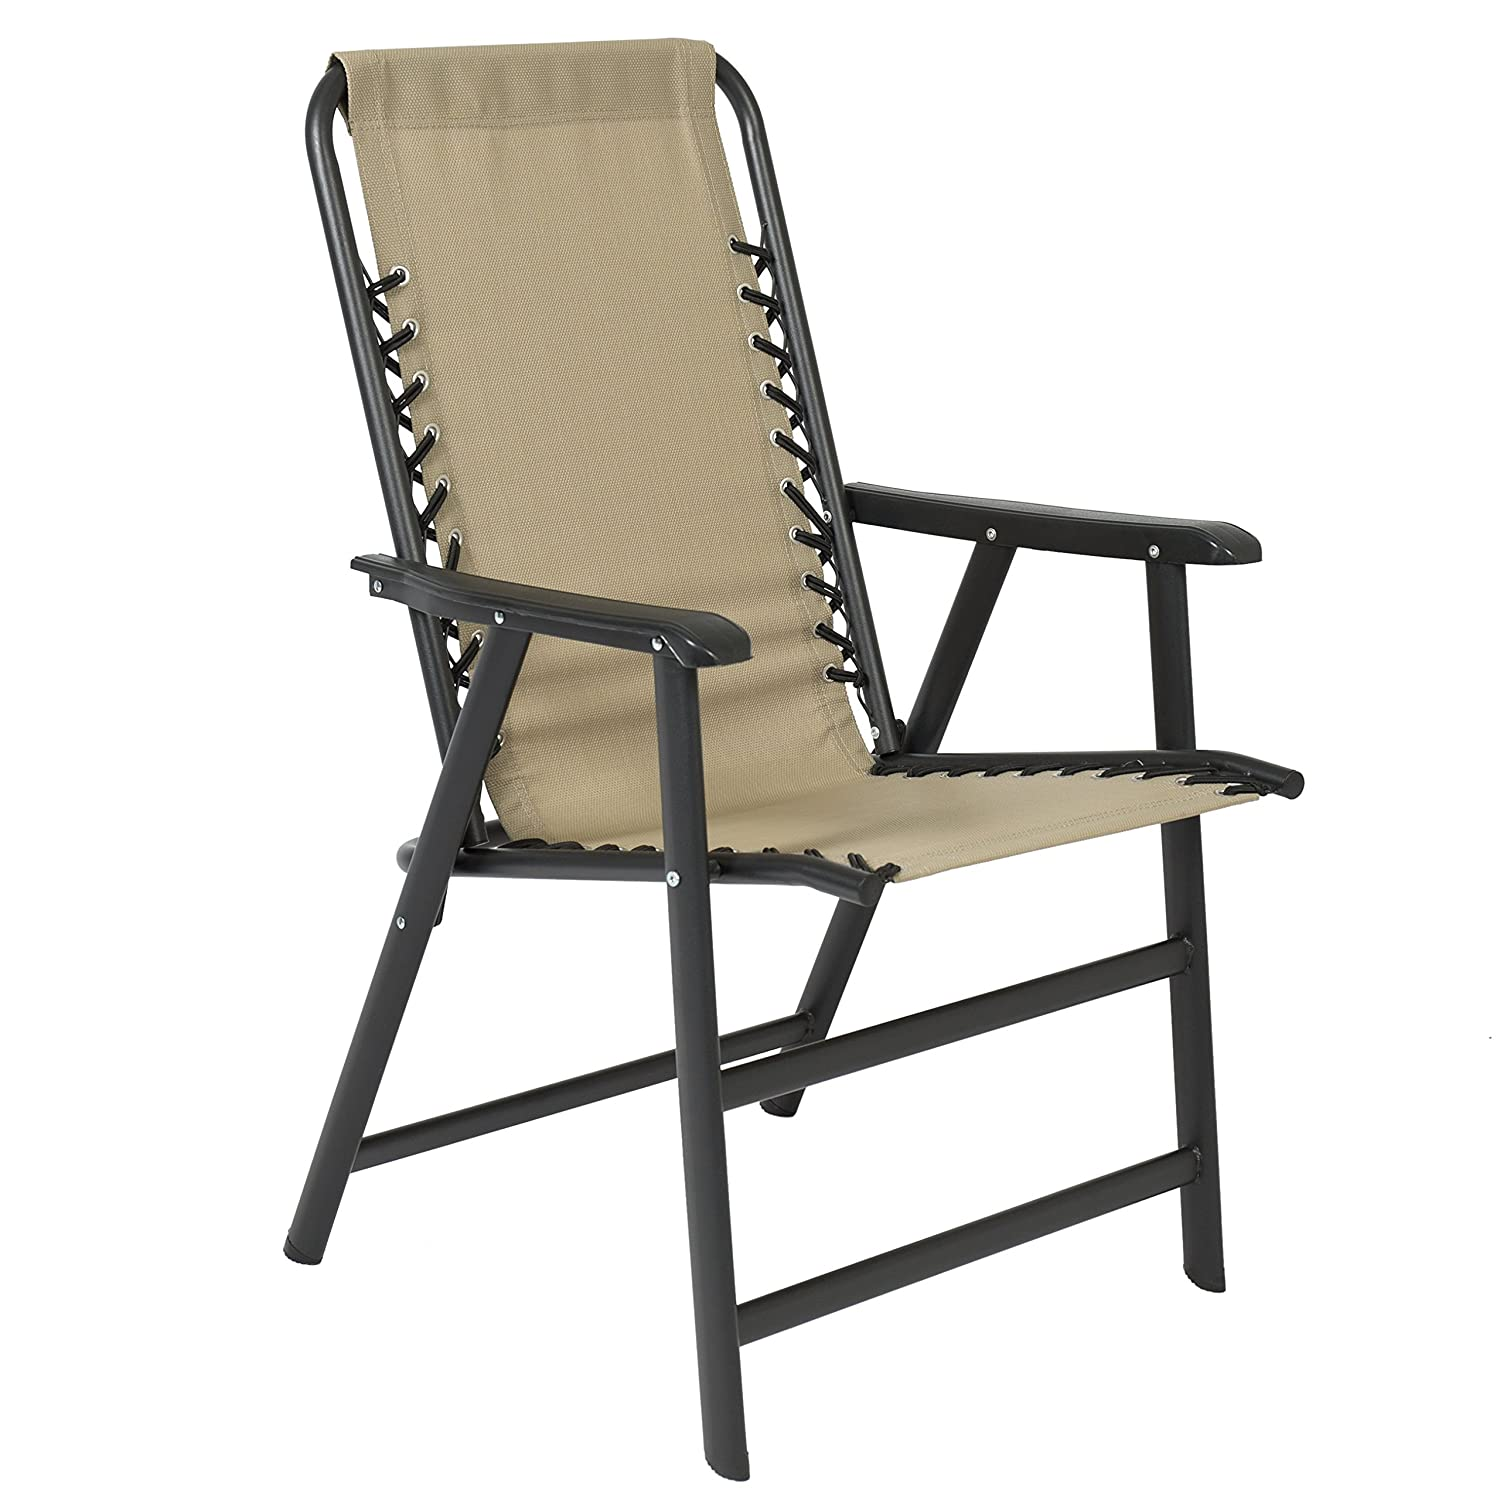 Best choice products lounge suspension folding chair for Outside porch chairs